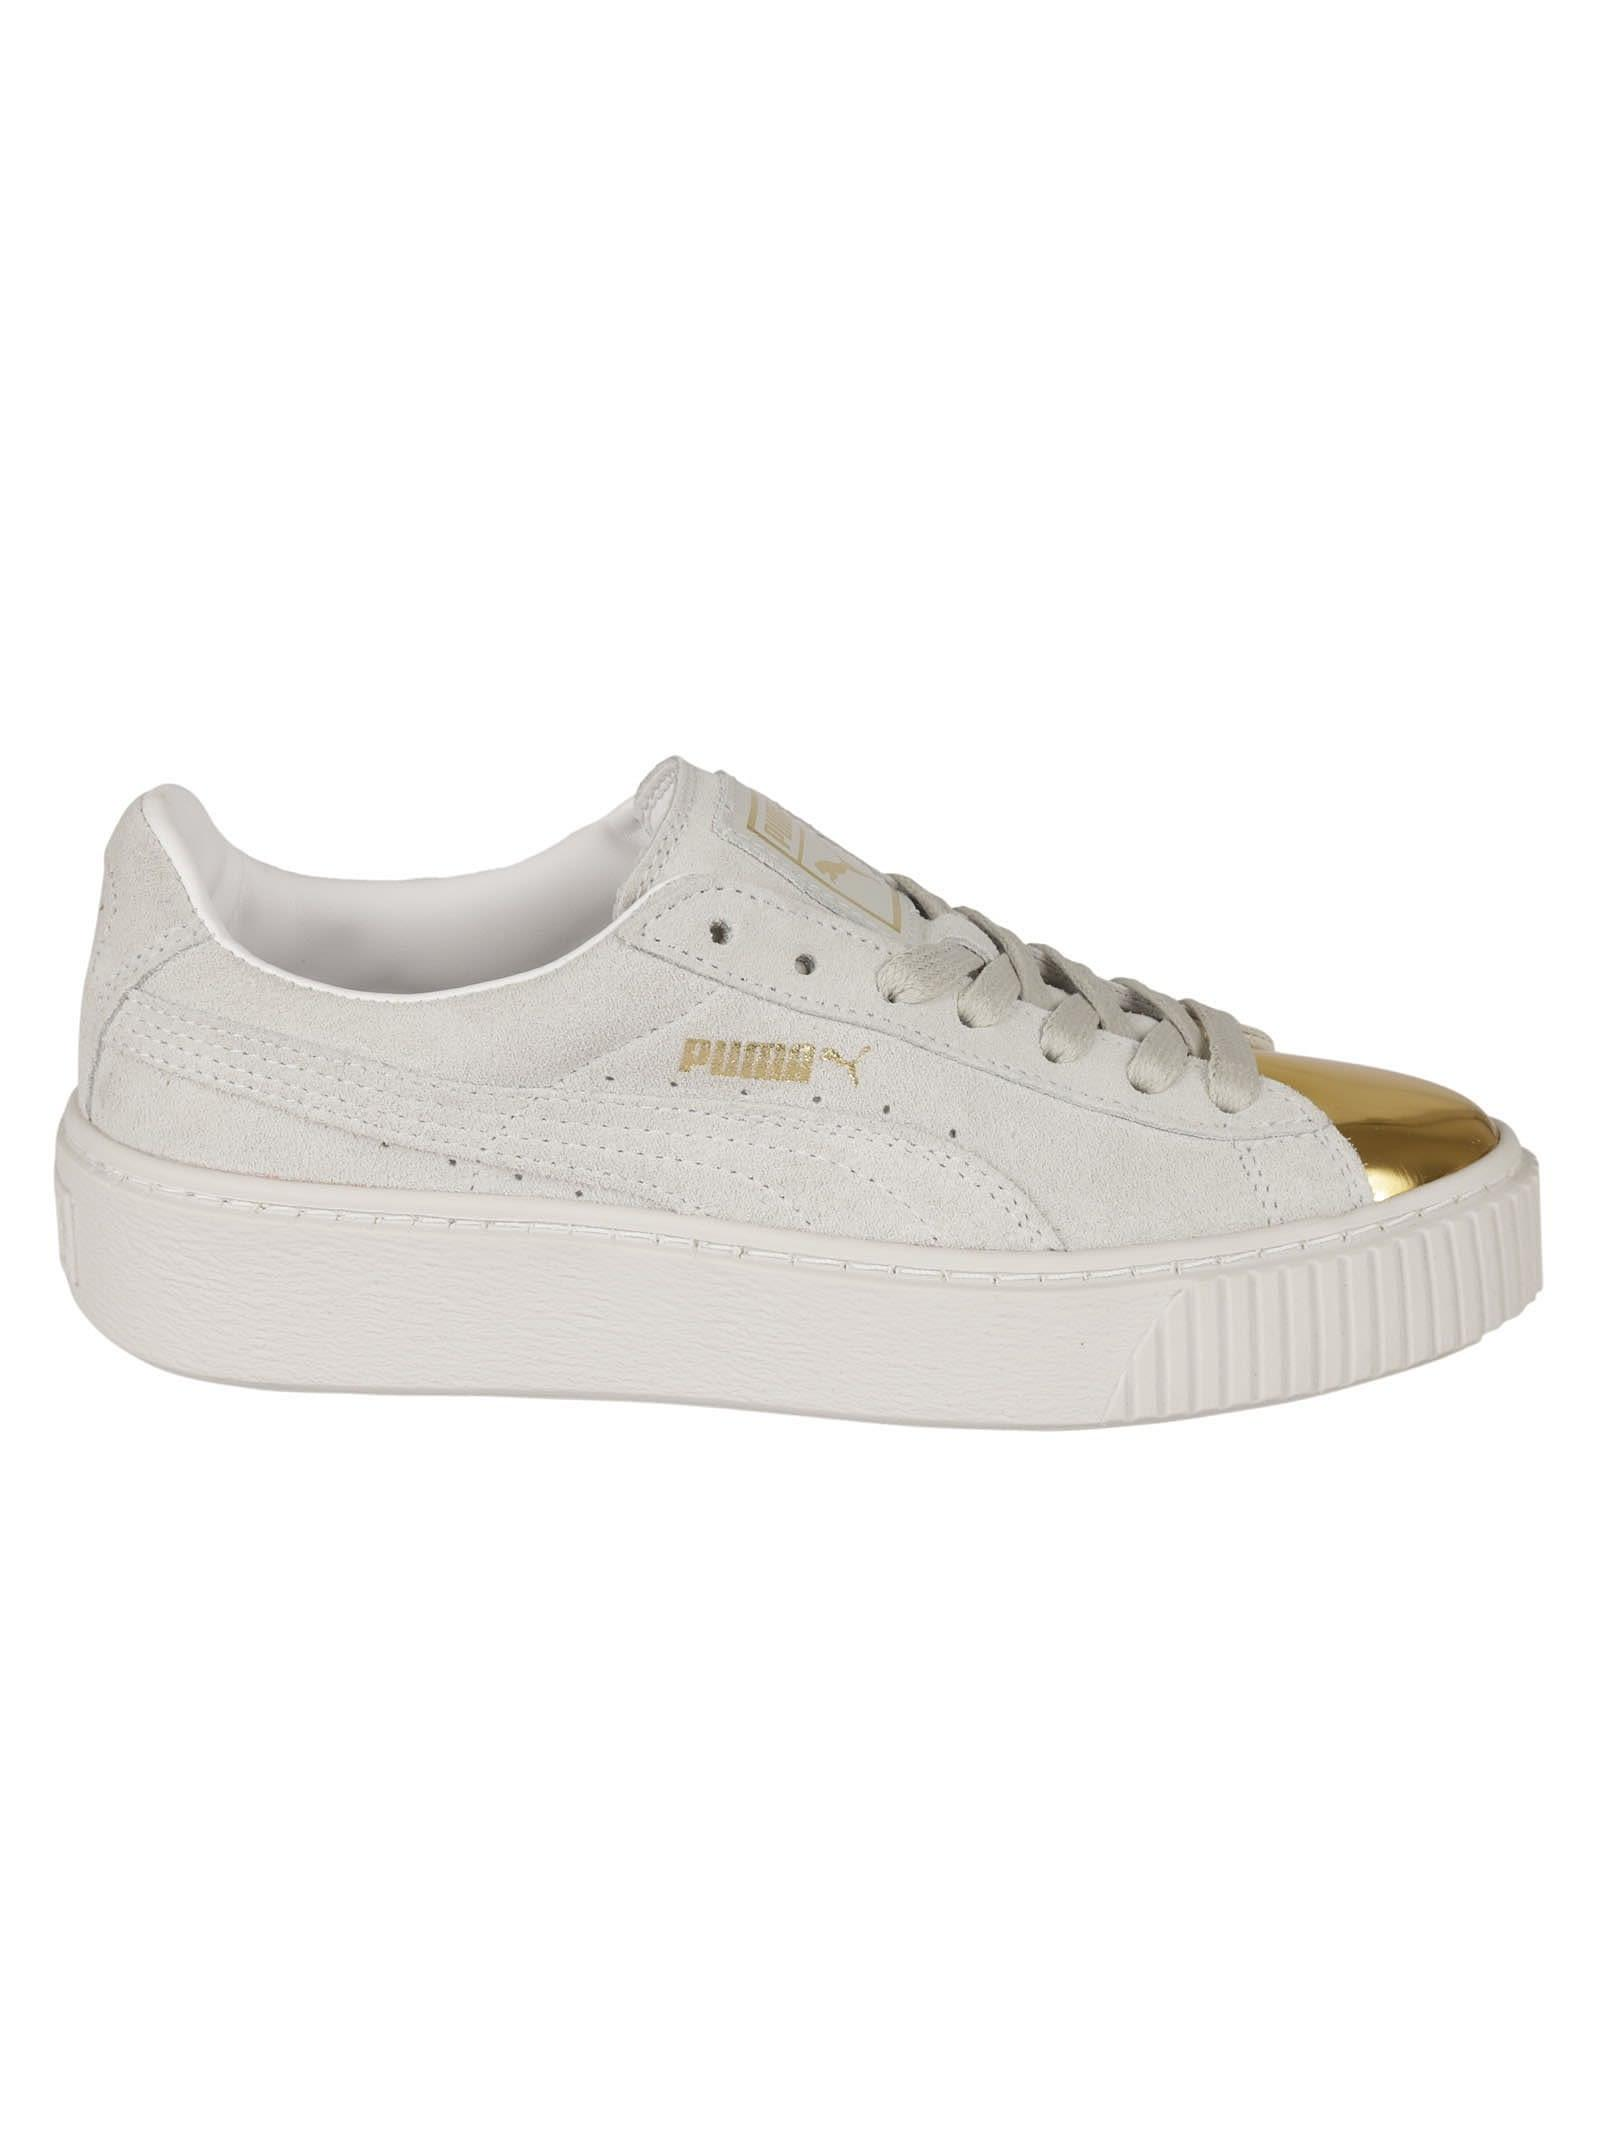 Puma White And Gold Platform Sneakers In Black/ Metallic Rust